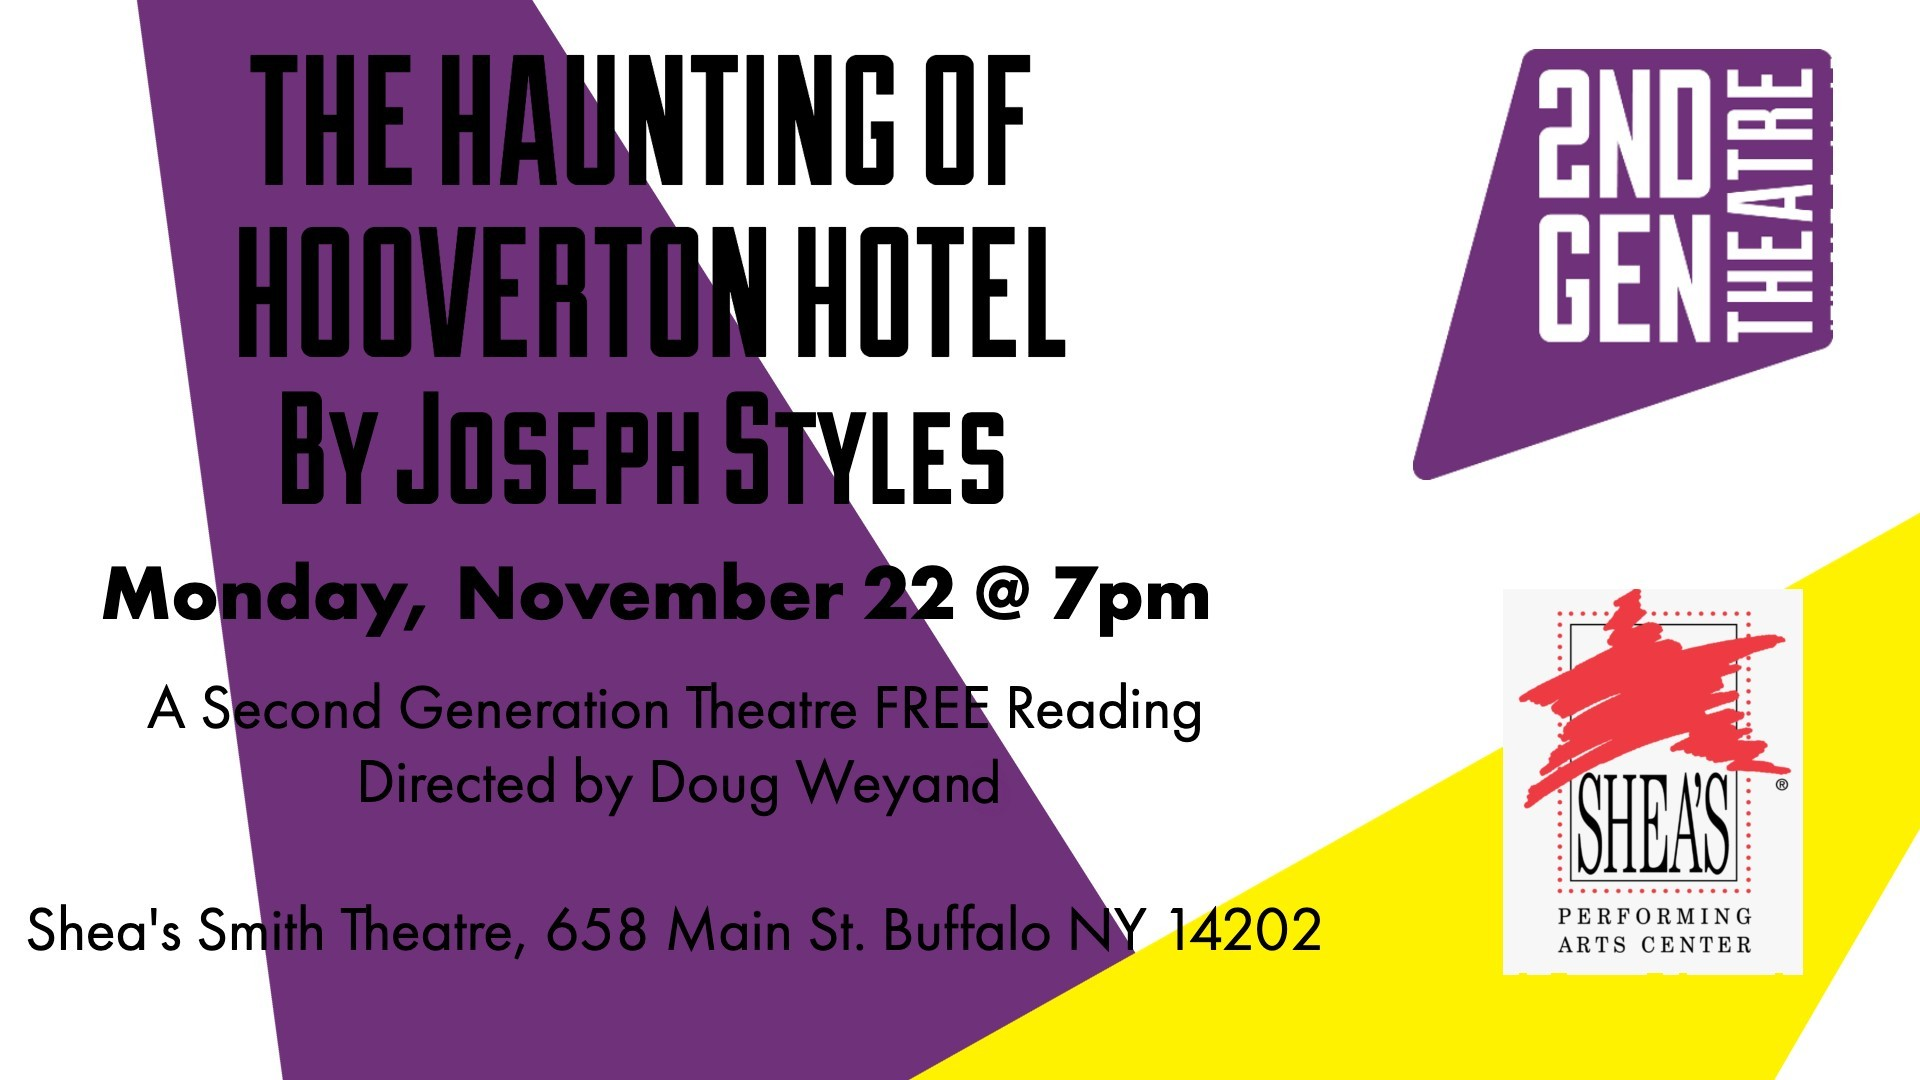 Haunting of Hooverton Hotel by Joseph Styles Free Reading Series Second Generation Theatre, November 22nd at the Shea's Smith Theatre